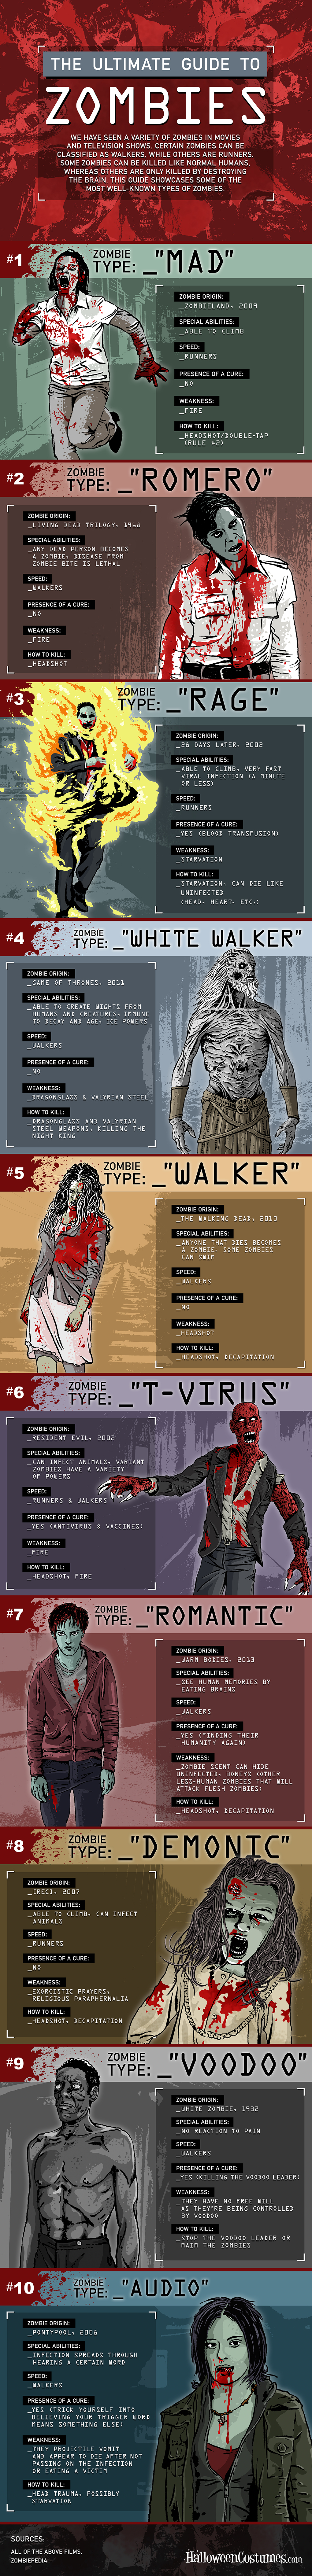 The Ultimate Guide to Zombies